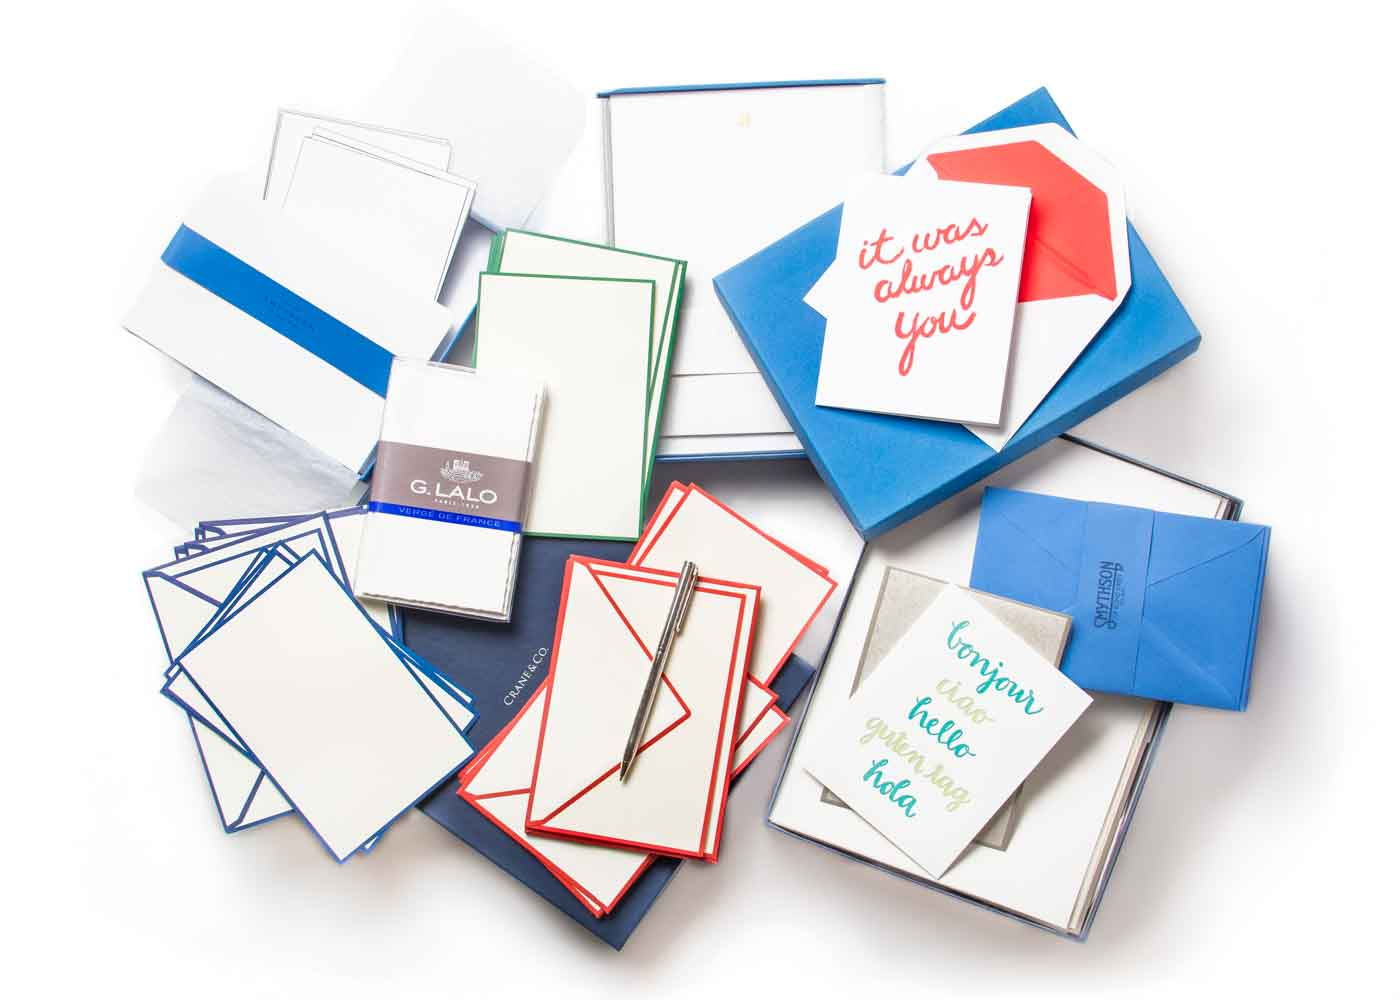 A sampling of notecards and writing paper from some of our favorite stationers.